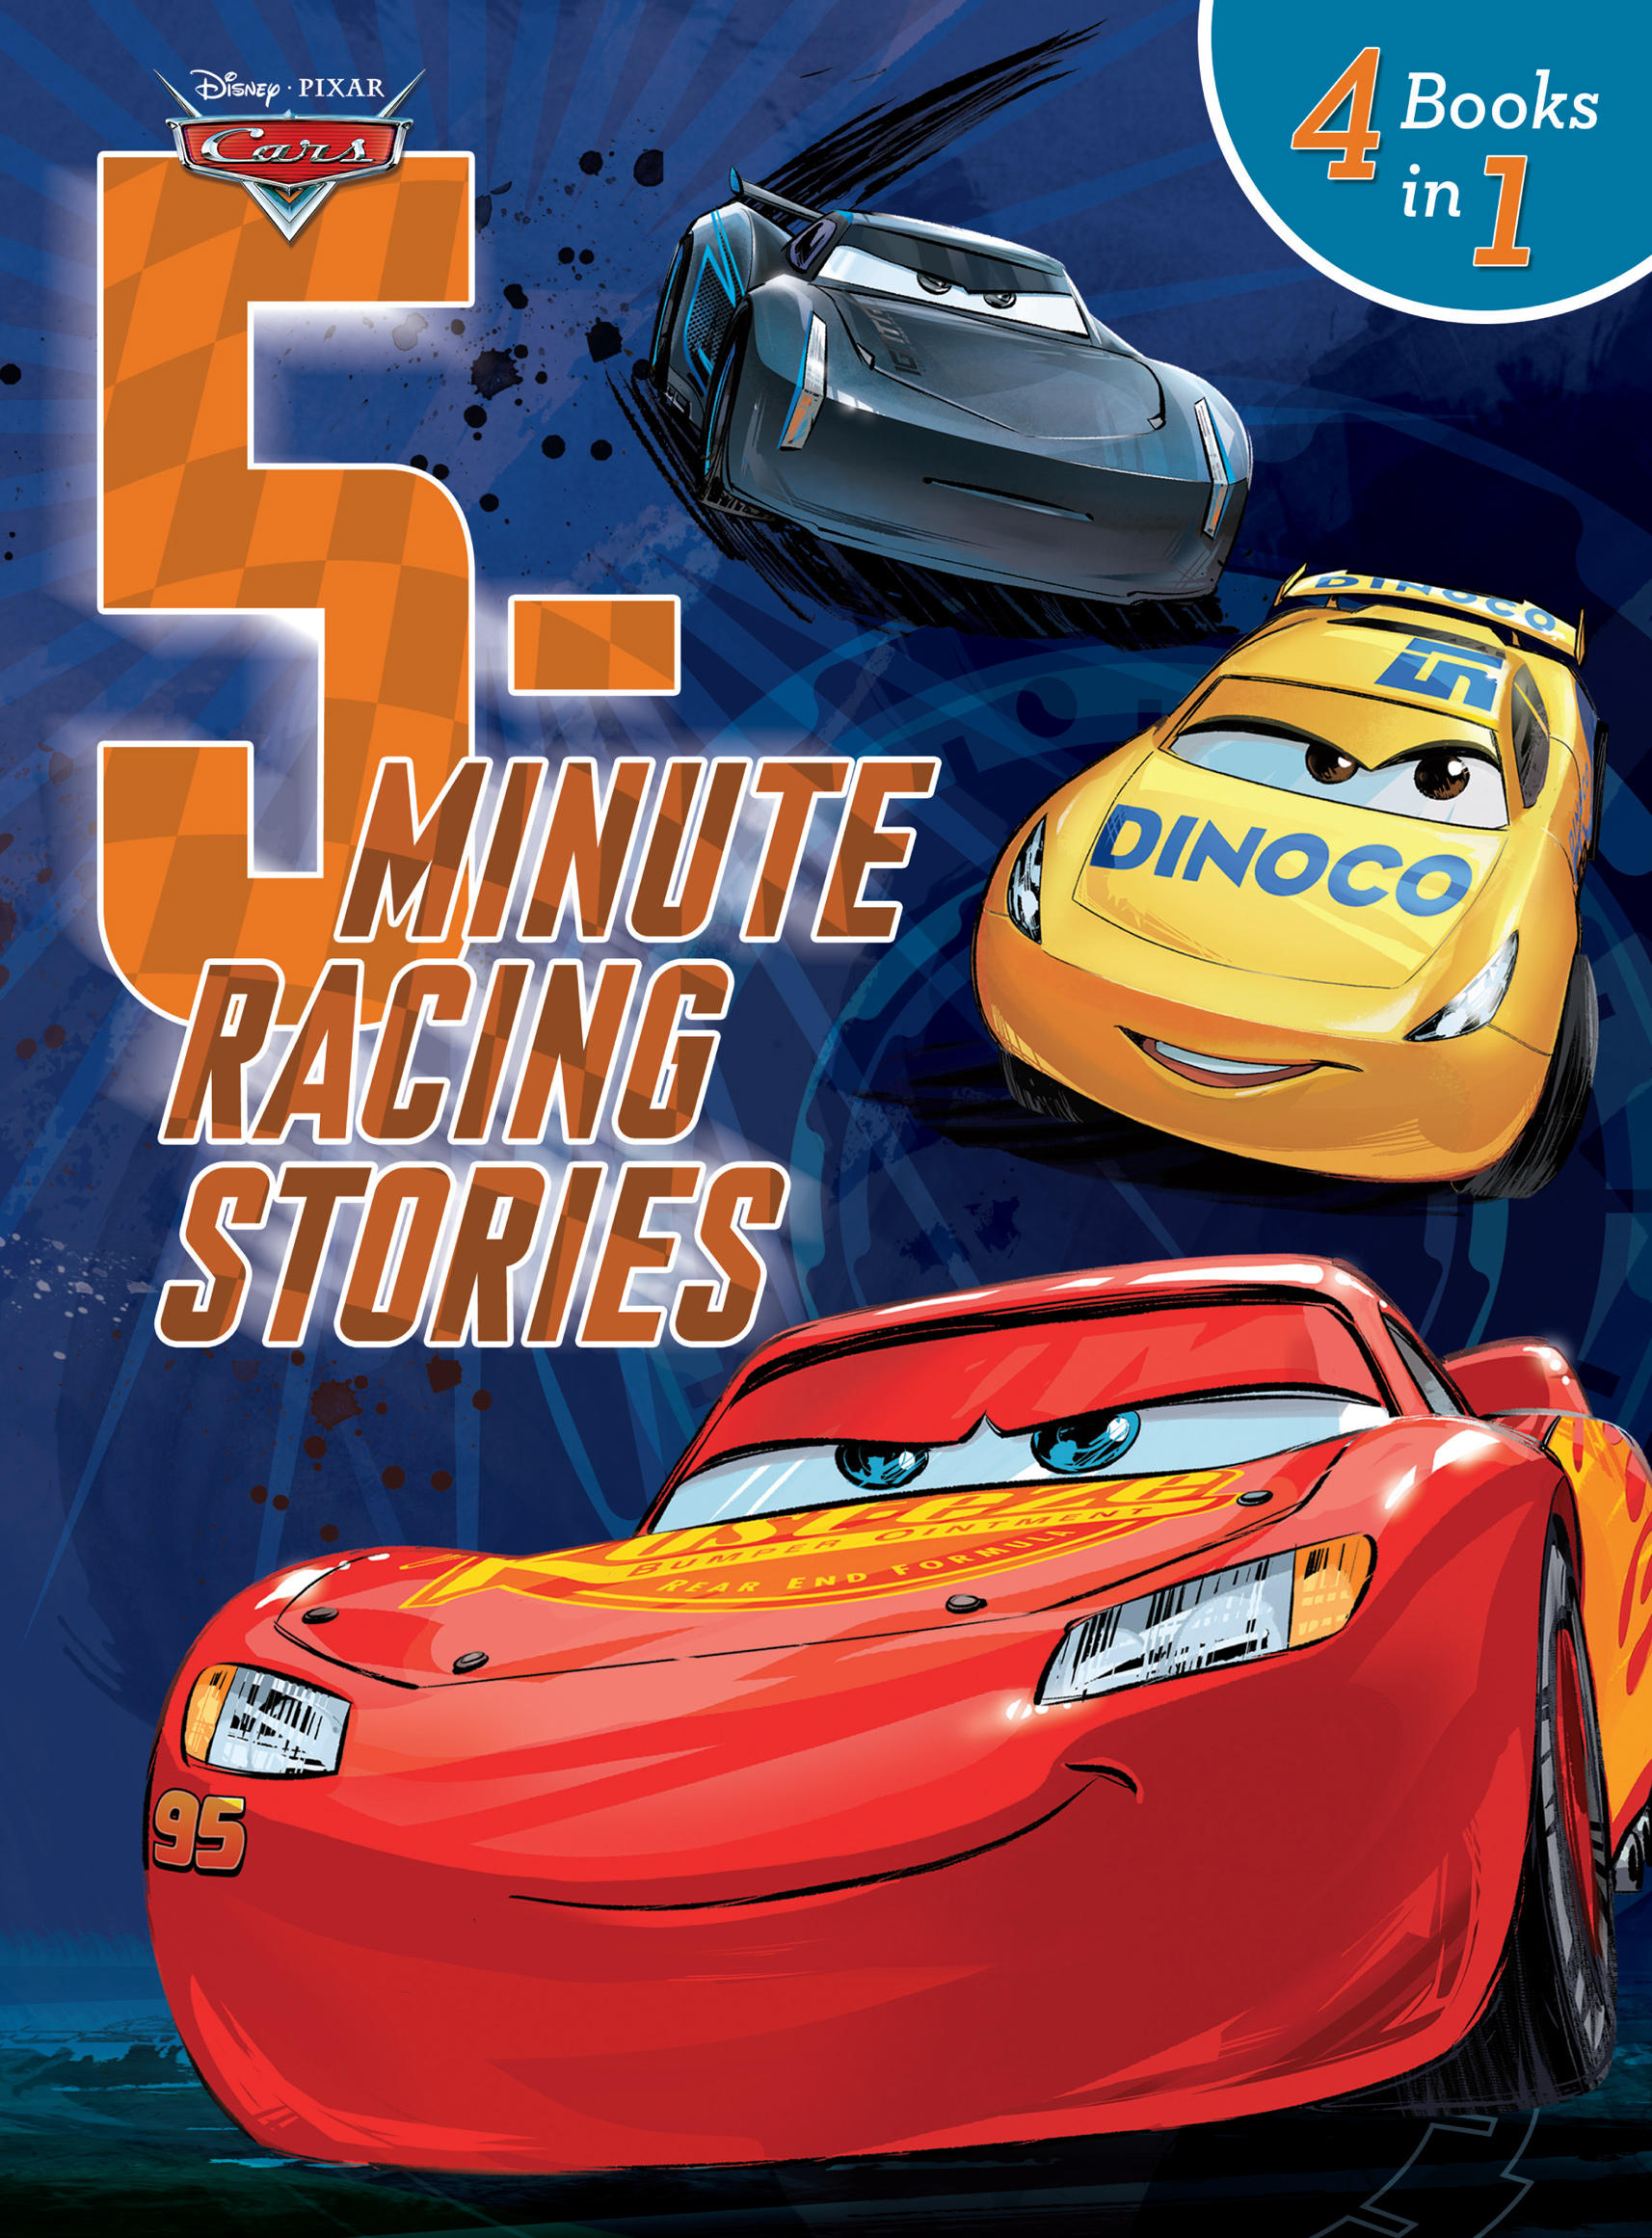 5-Minute Racing Stories 4 Stories in 1